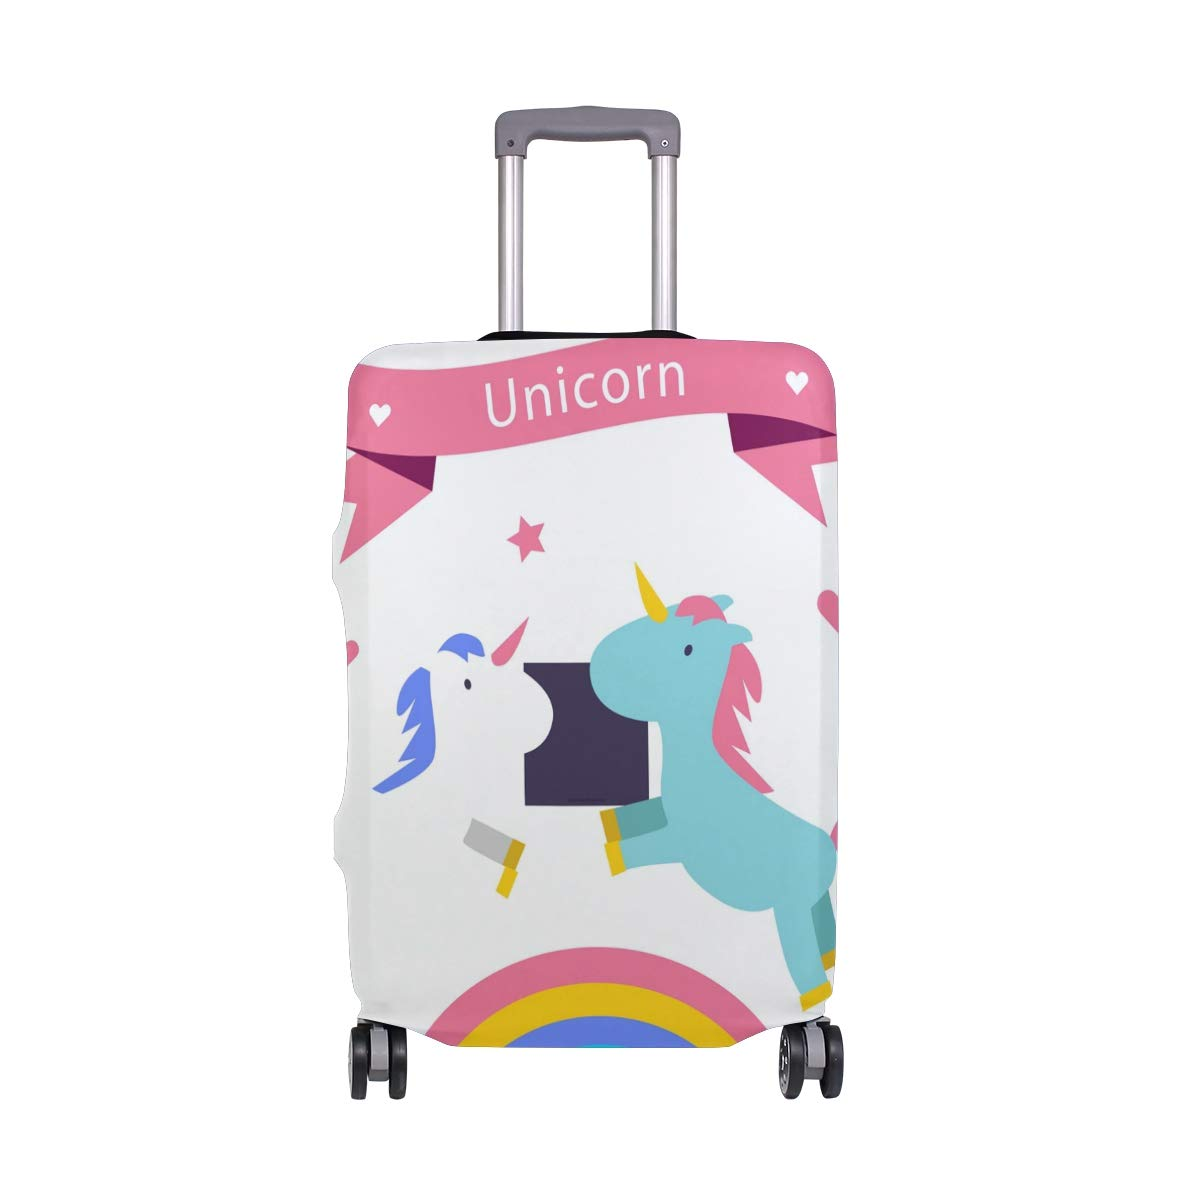 GIOVANIOR Love Rainbow Unicorn Luggage Cover Suitcase Protector Carry On Covers